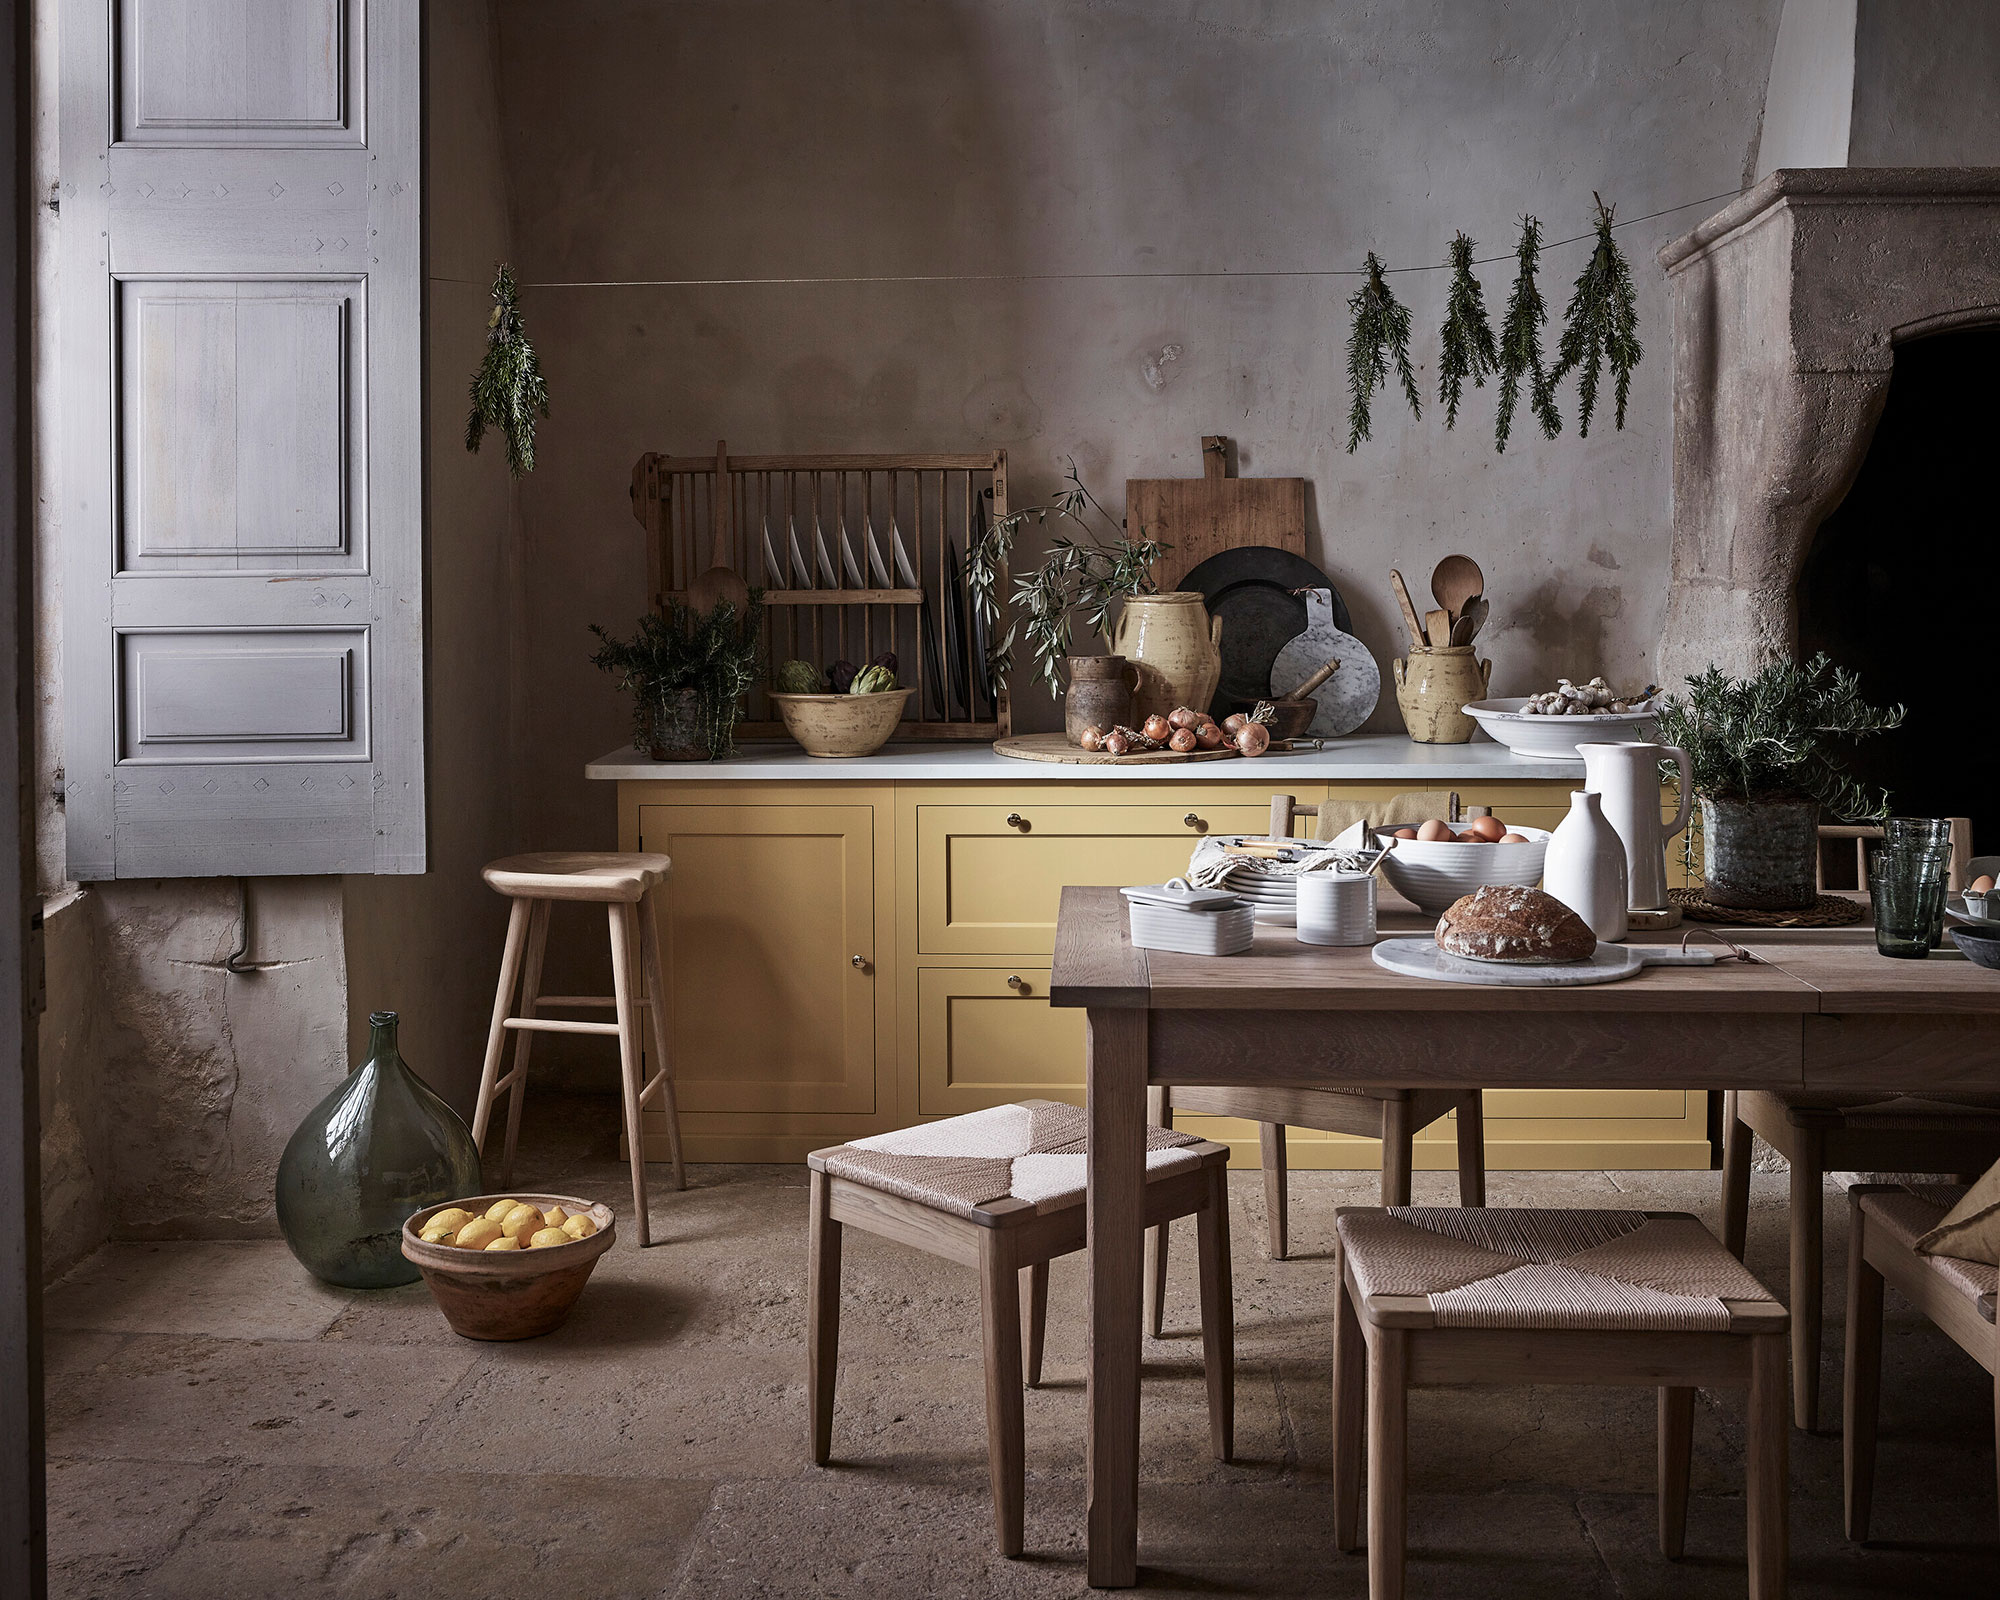 French Country Kitchen Ideas Take A Rustic Approach To Fixtures And Furnishings Country